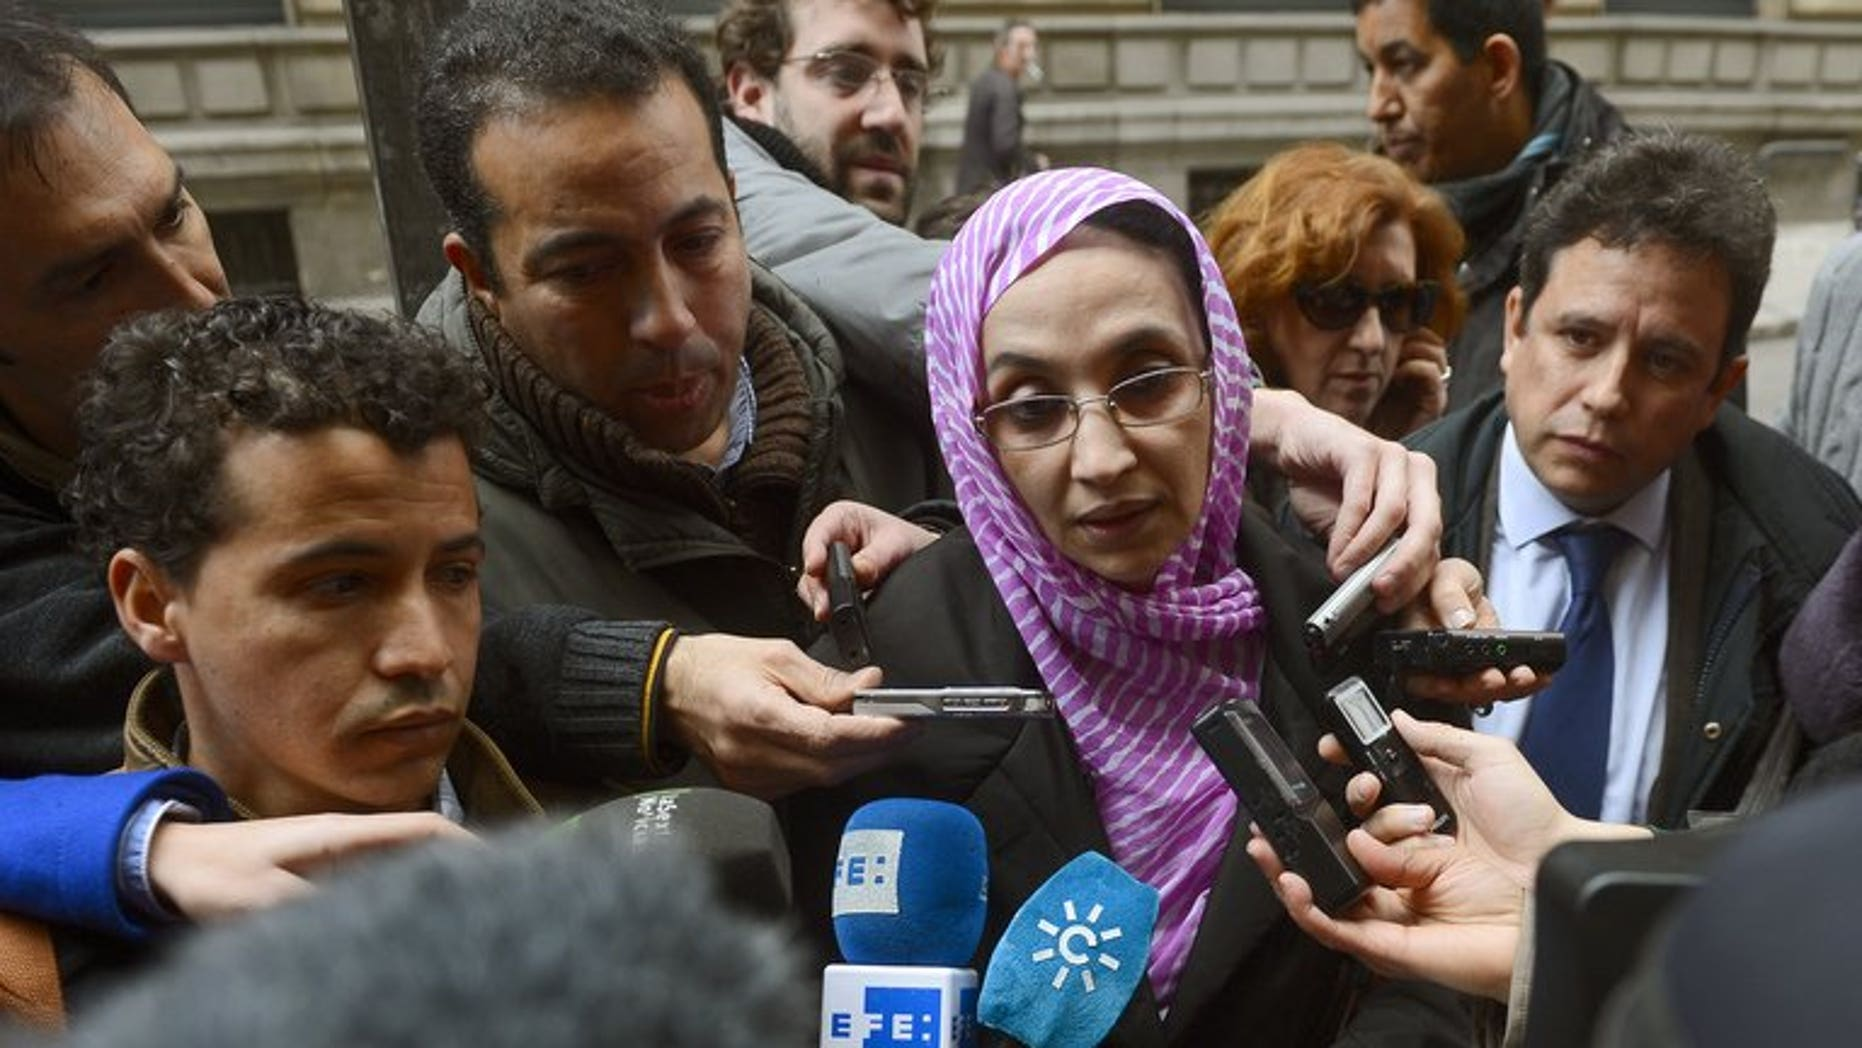 Sahrawi human rights activist Aminatou Haidar speaks to the media as she leaves the High Court in Madrid on March 13, 2013.